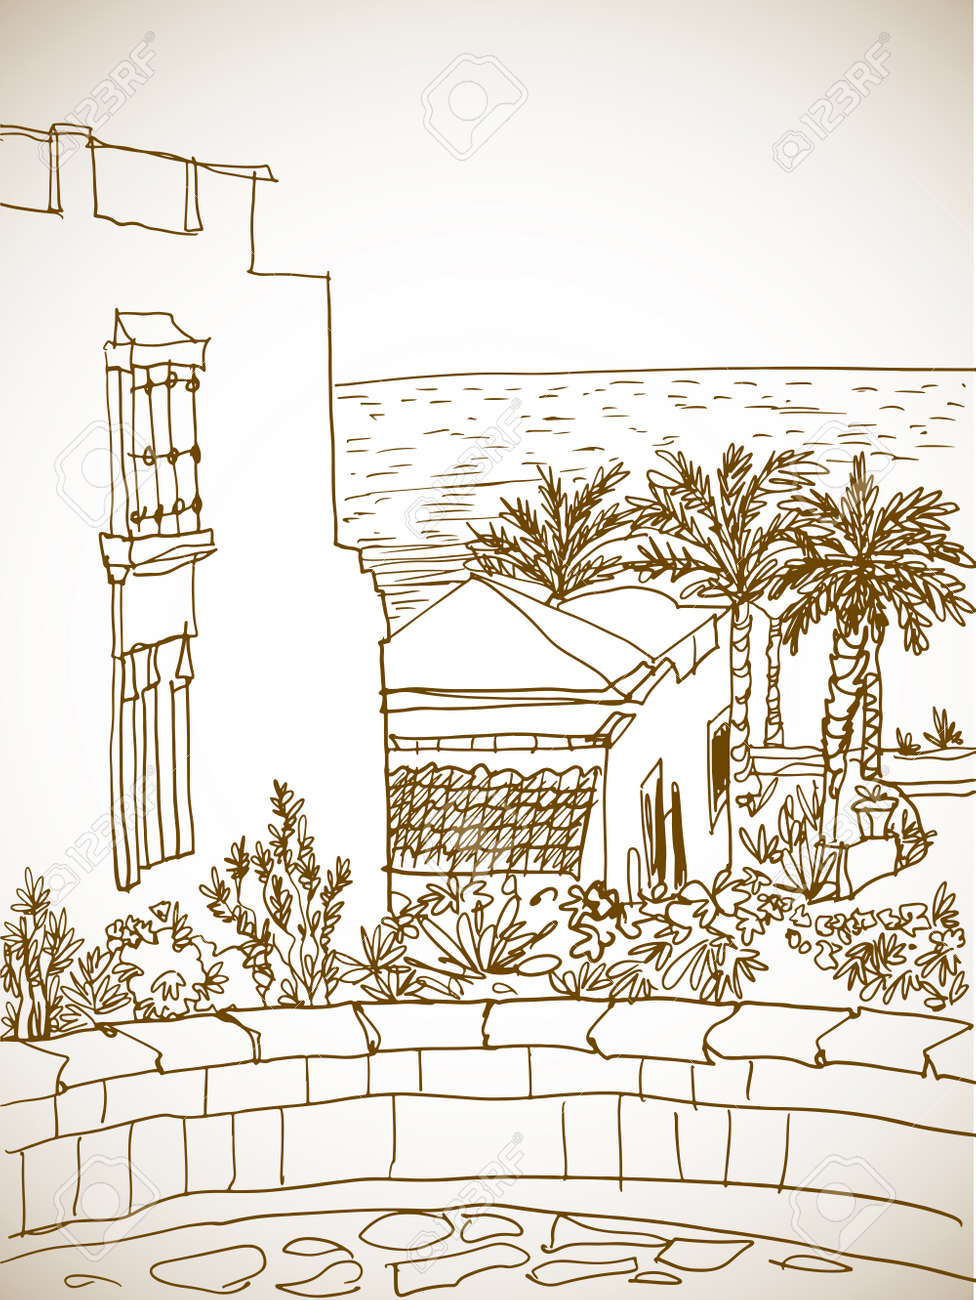 Beautiful Egypt landscape with palm trees. Hand drawn line ink sketch. Seaside holiday. Sepia Illustration on white. - 170062887